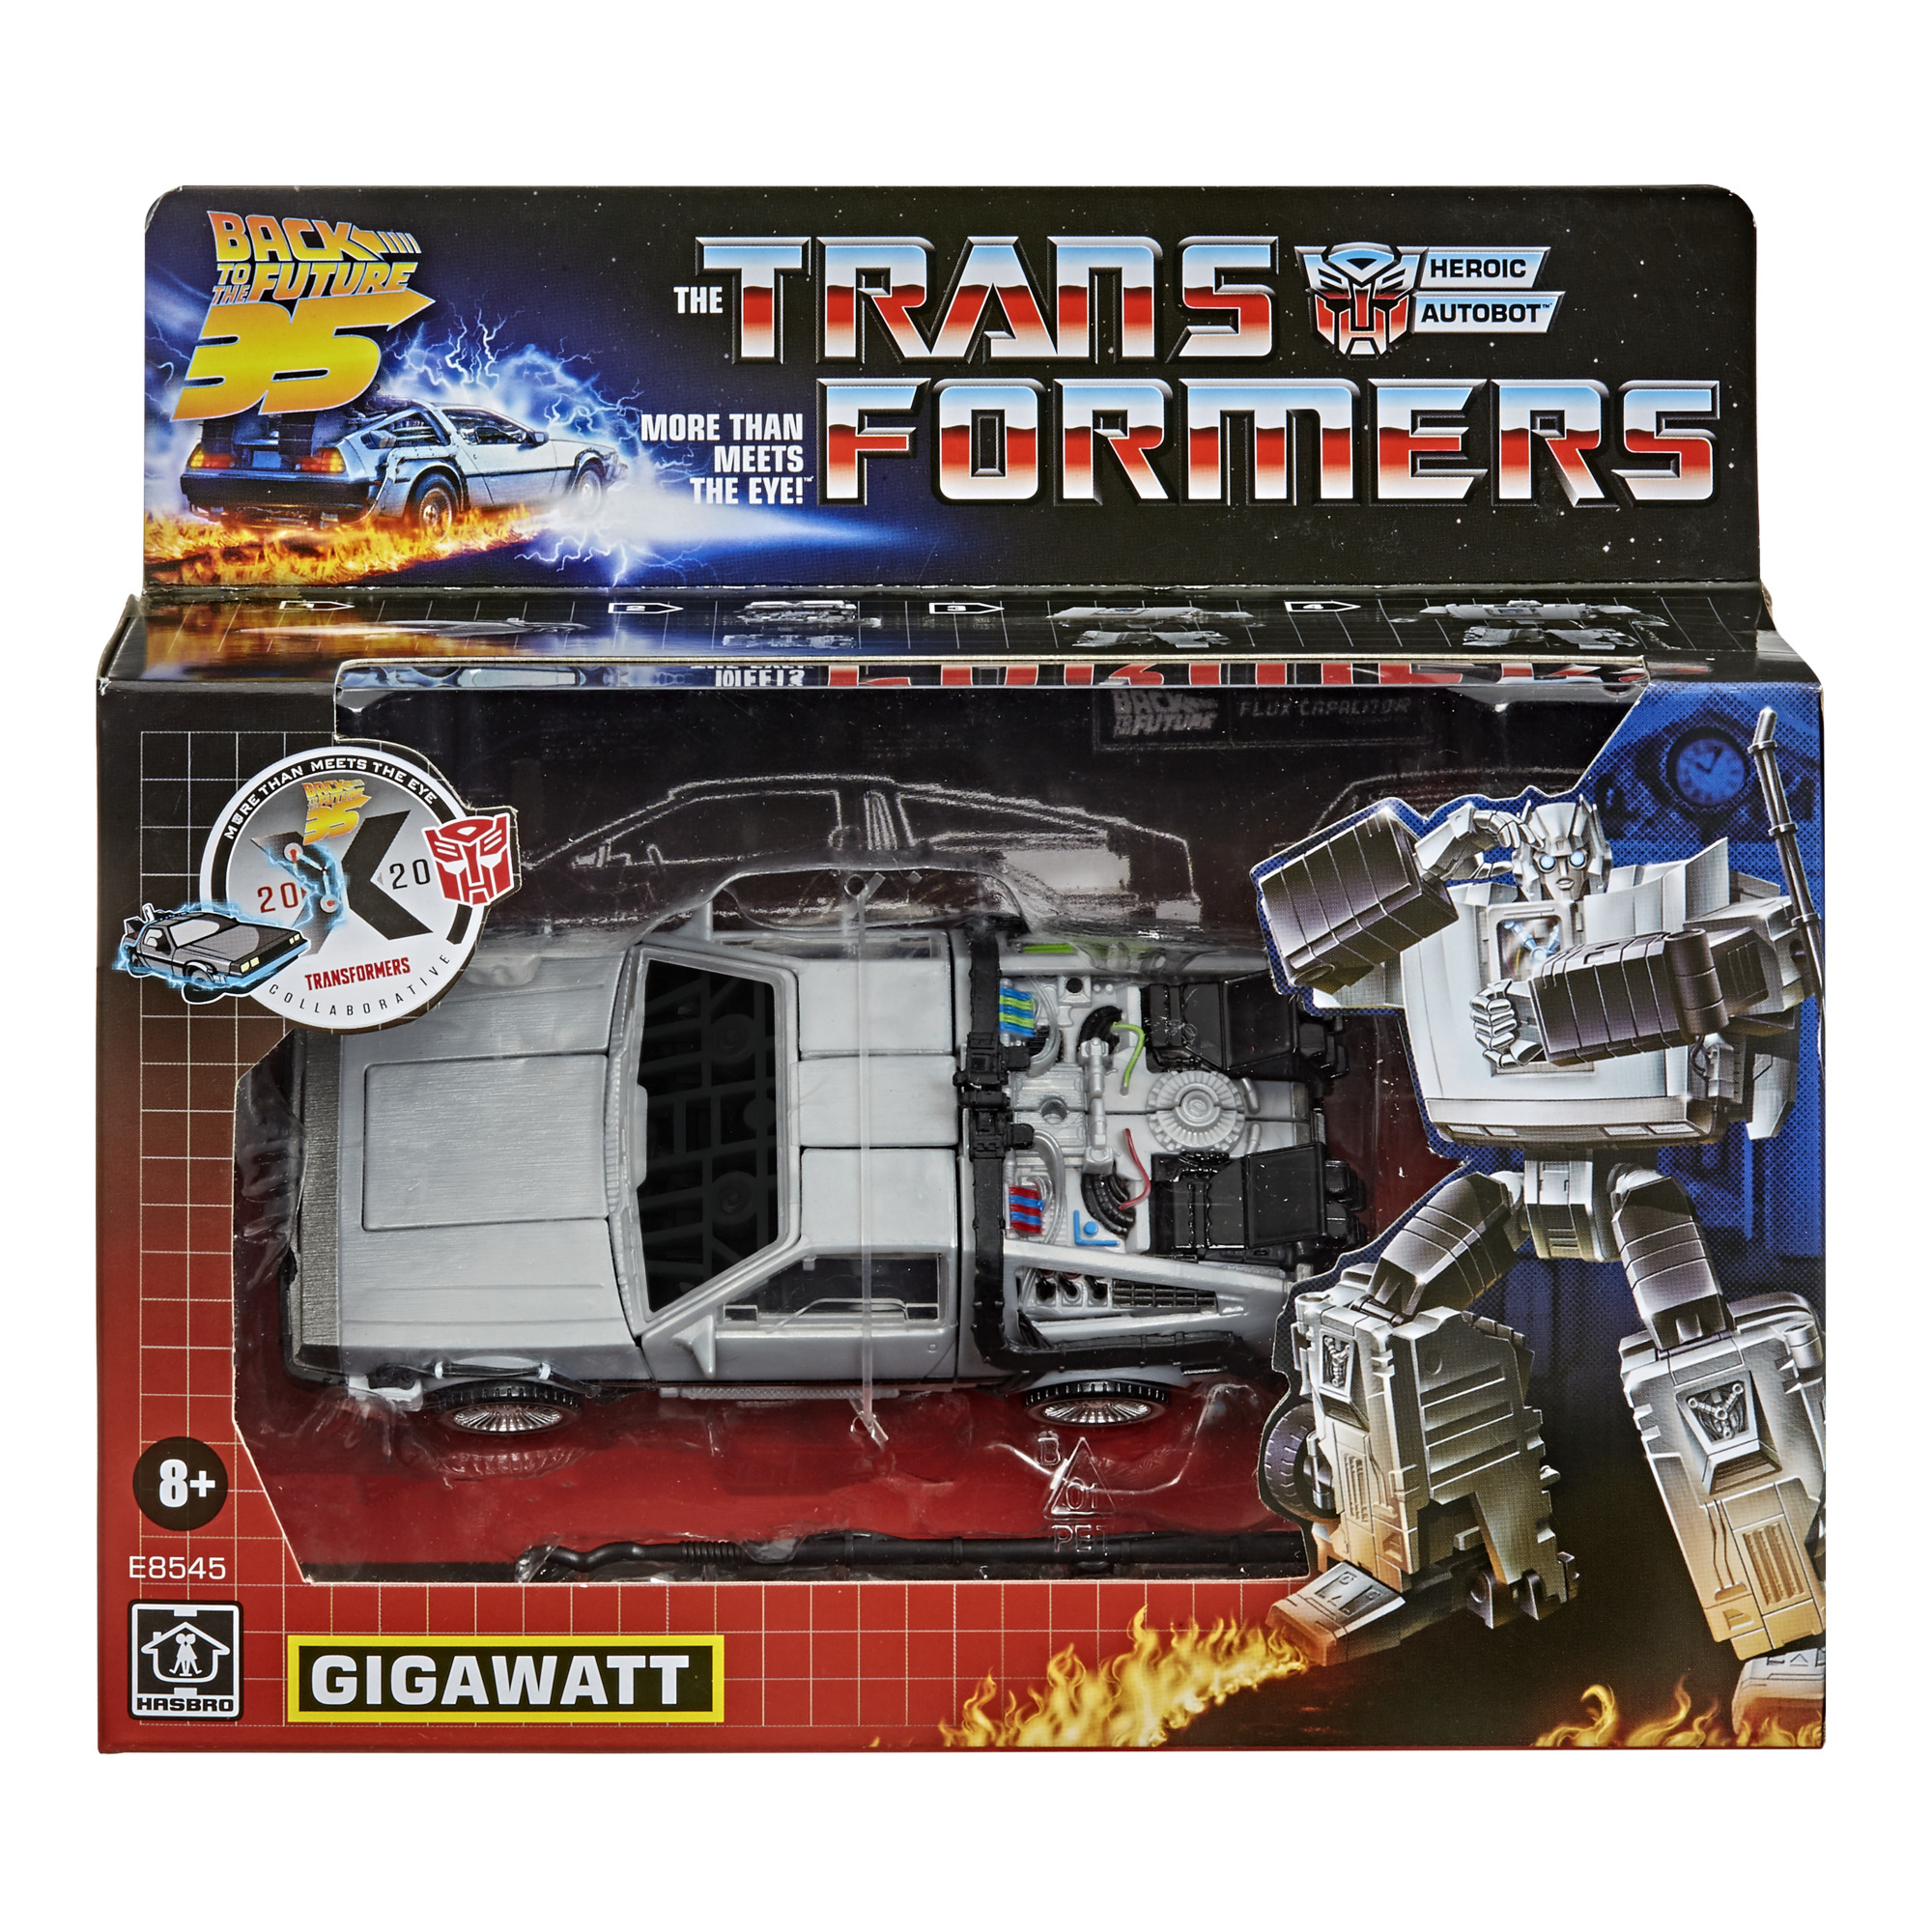 Transformers Generations / Back To The Future - Gigawatt Action Figure